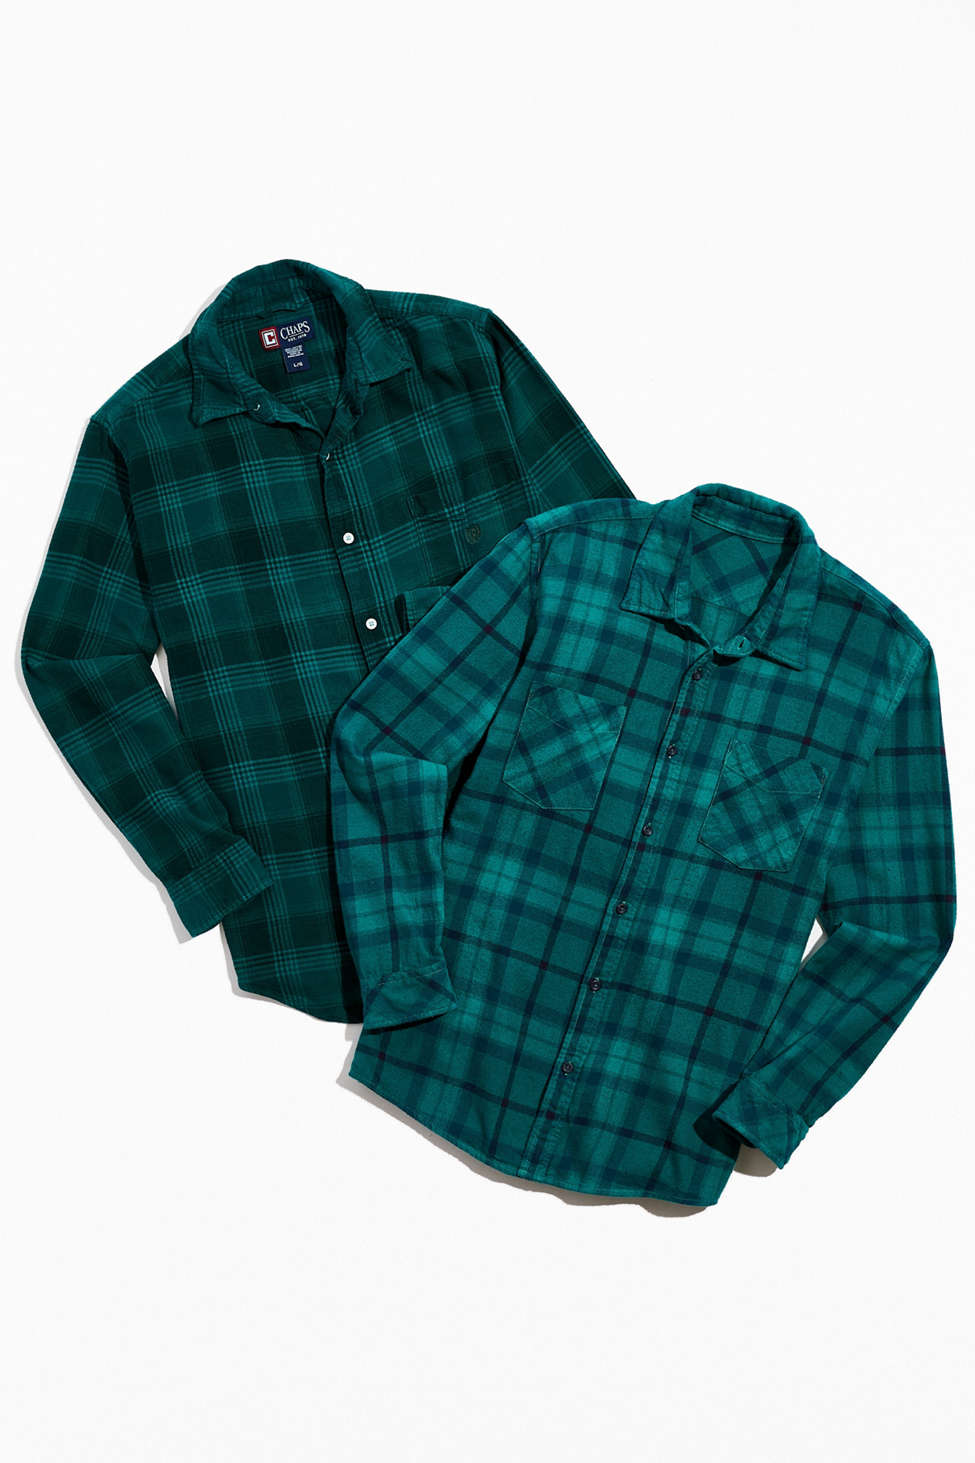 Urban Renewal Overdyed Vintage Flannel Shirt   Urban Outfitters